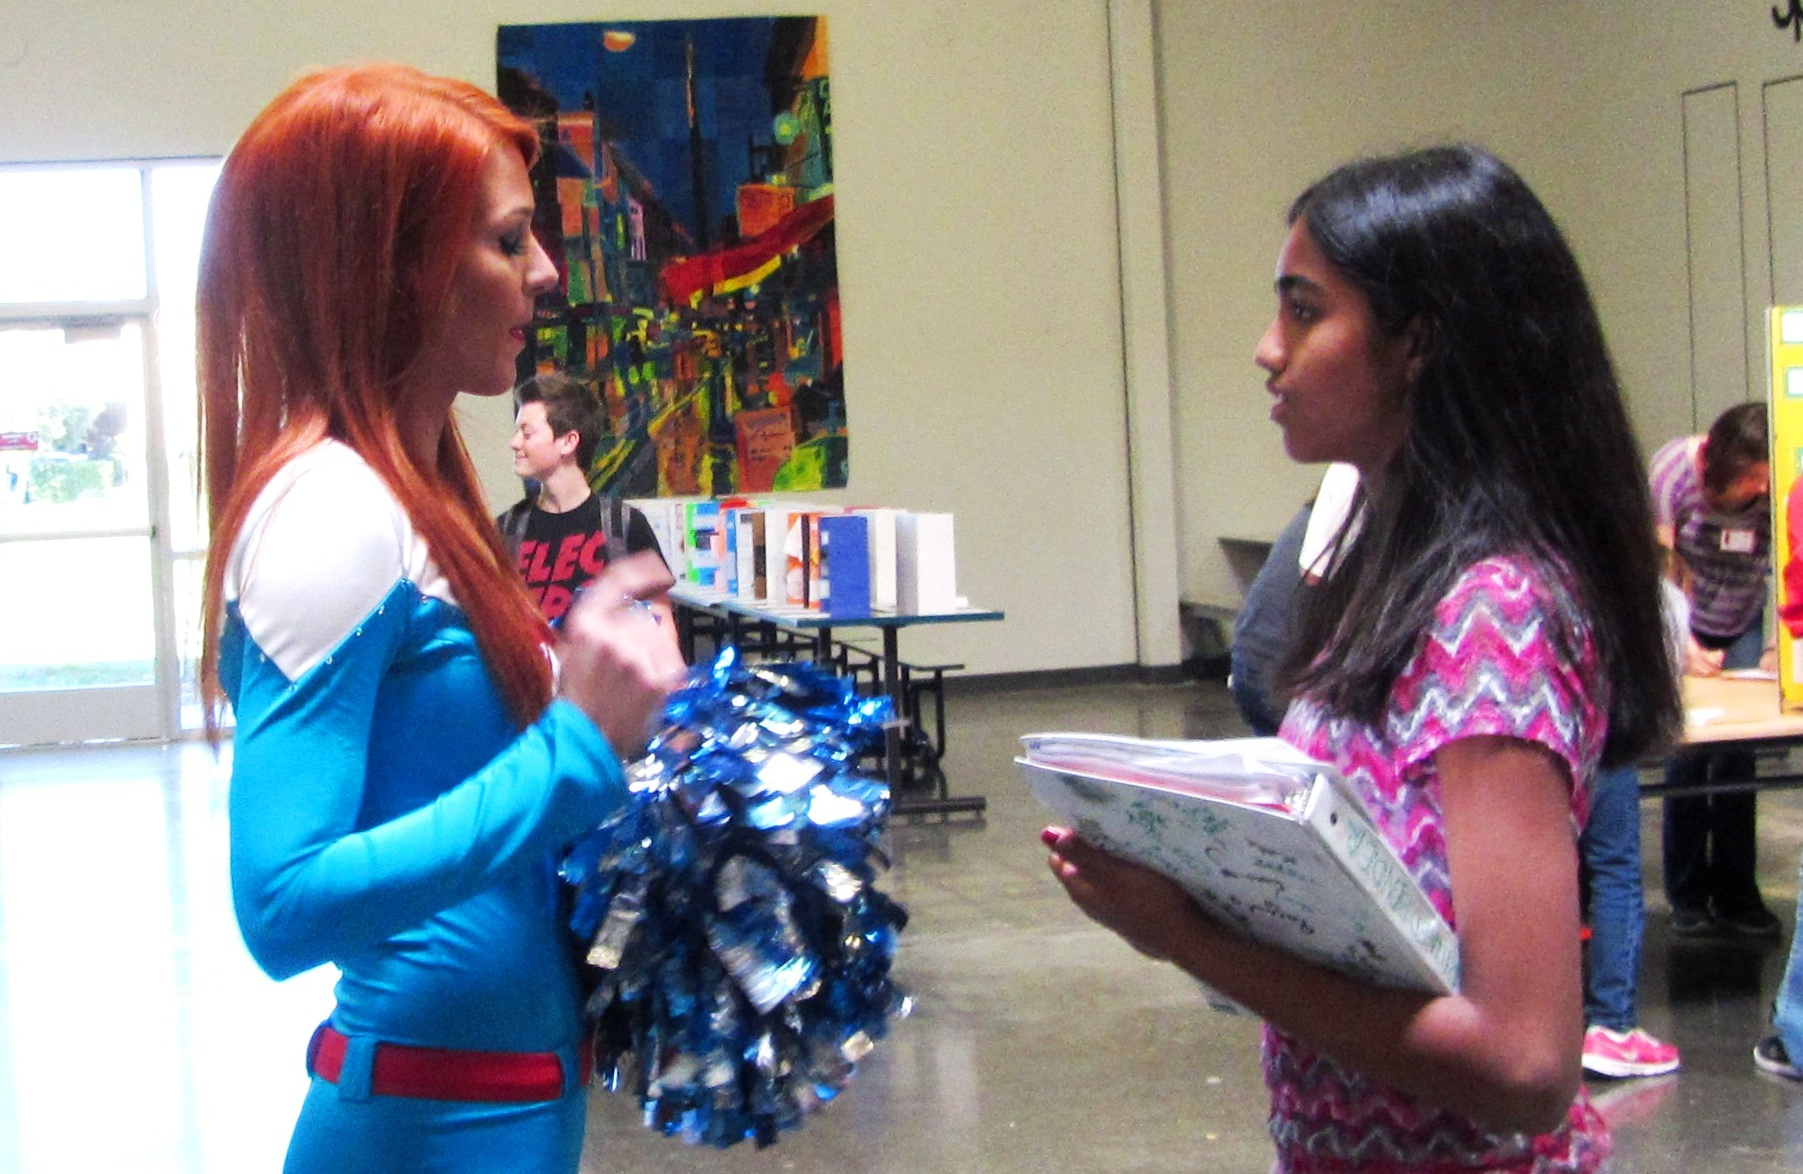 Cheers to supporting future scientists and engineers! Guest post from Science Cheerleader Wendy Brown.